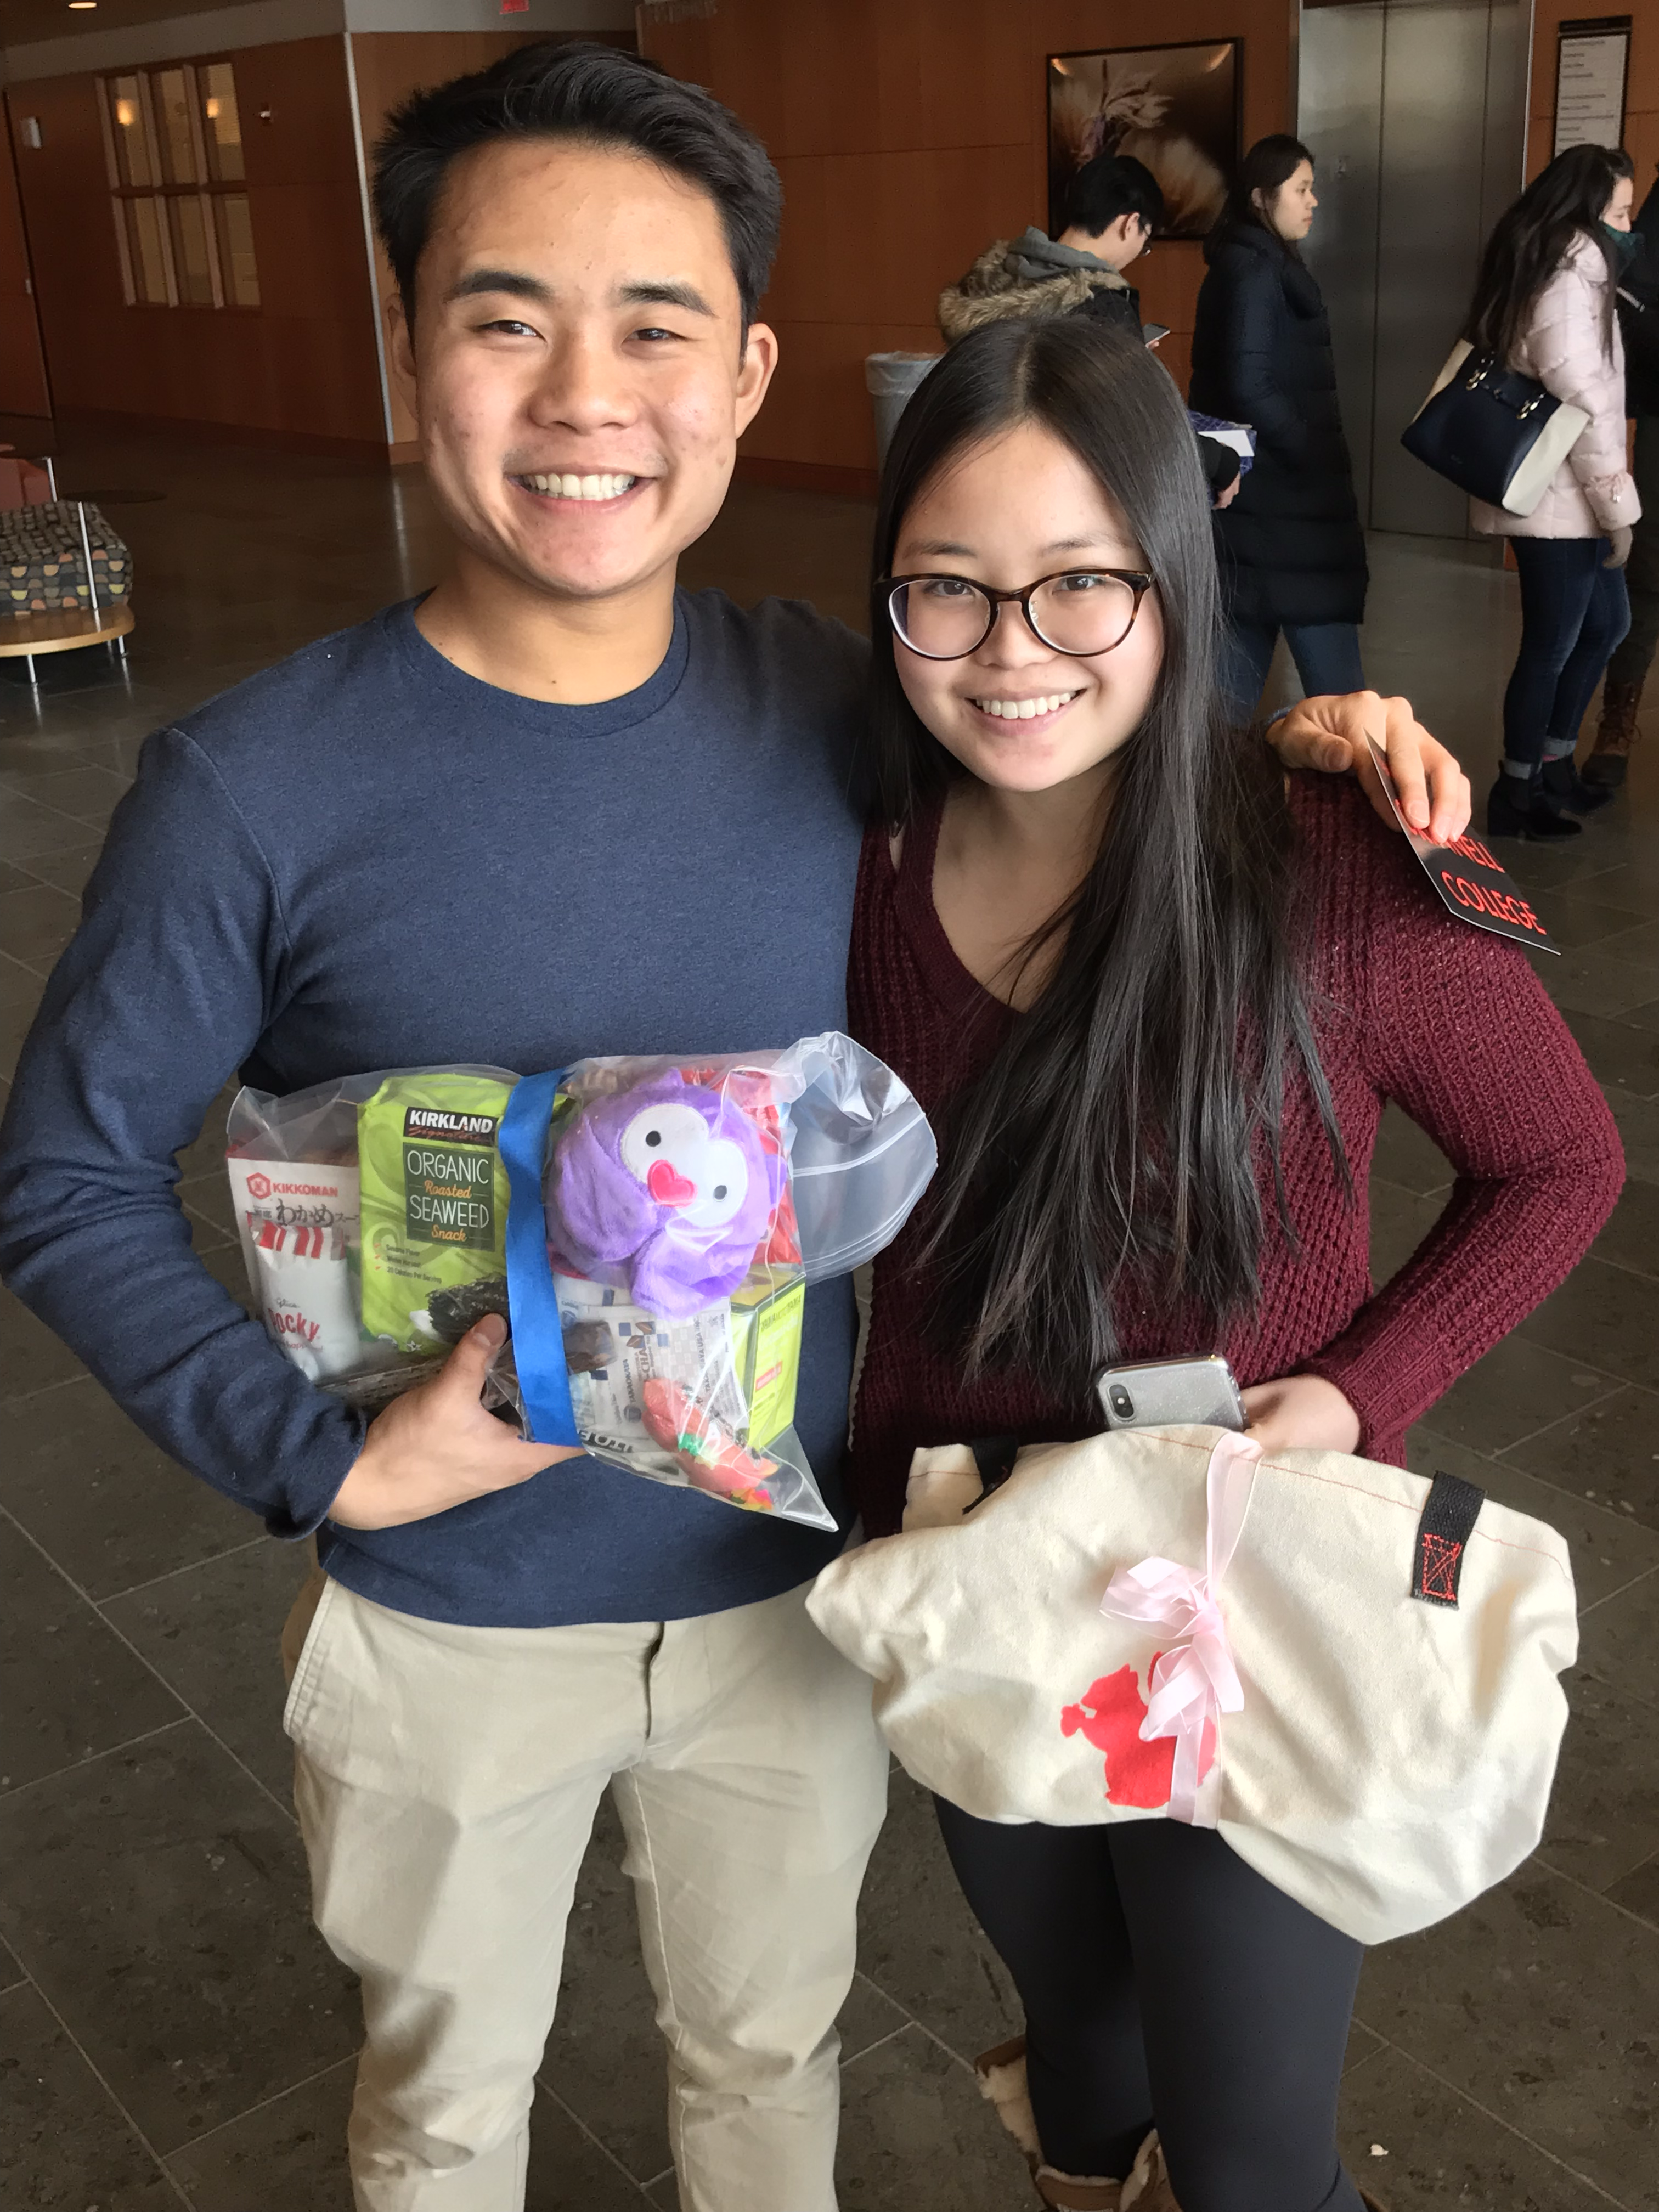 Bryce Lew '19 and Dana Watkiss '19 show off their own care packages